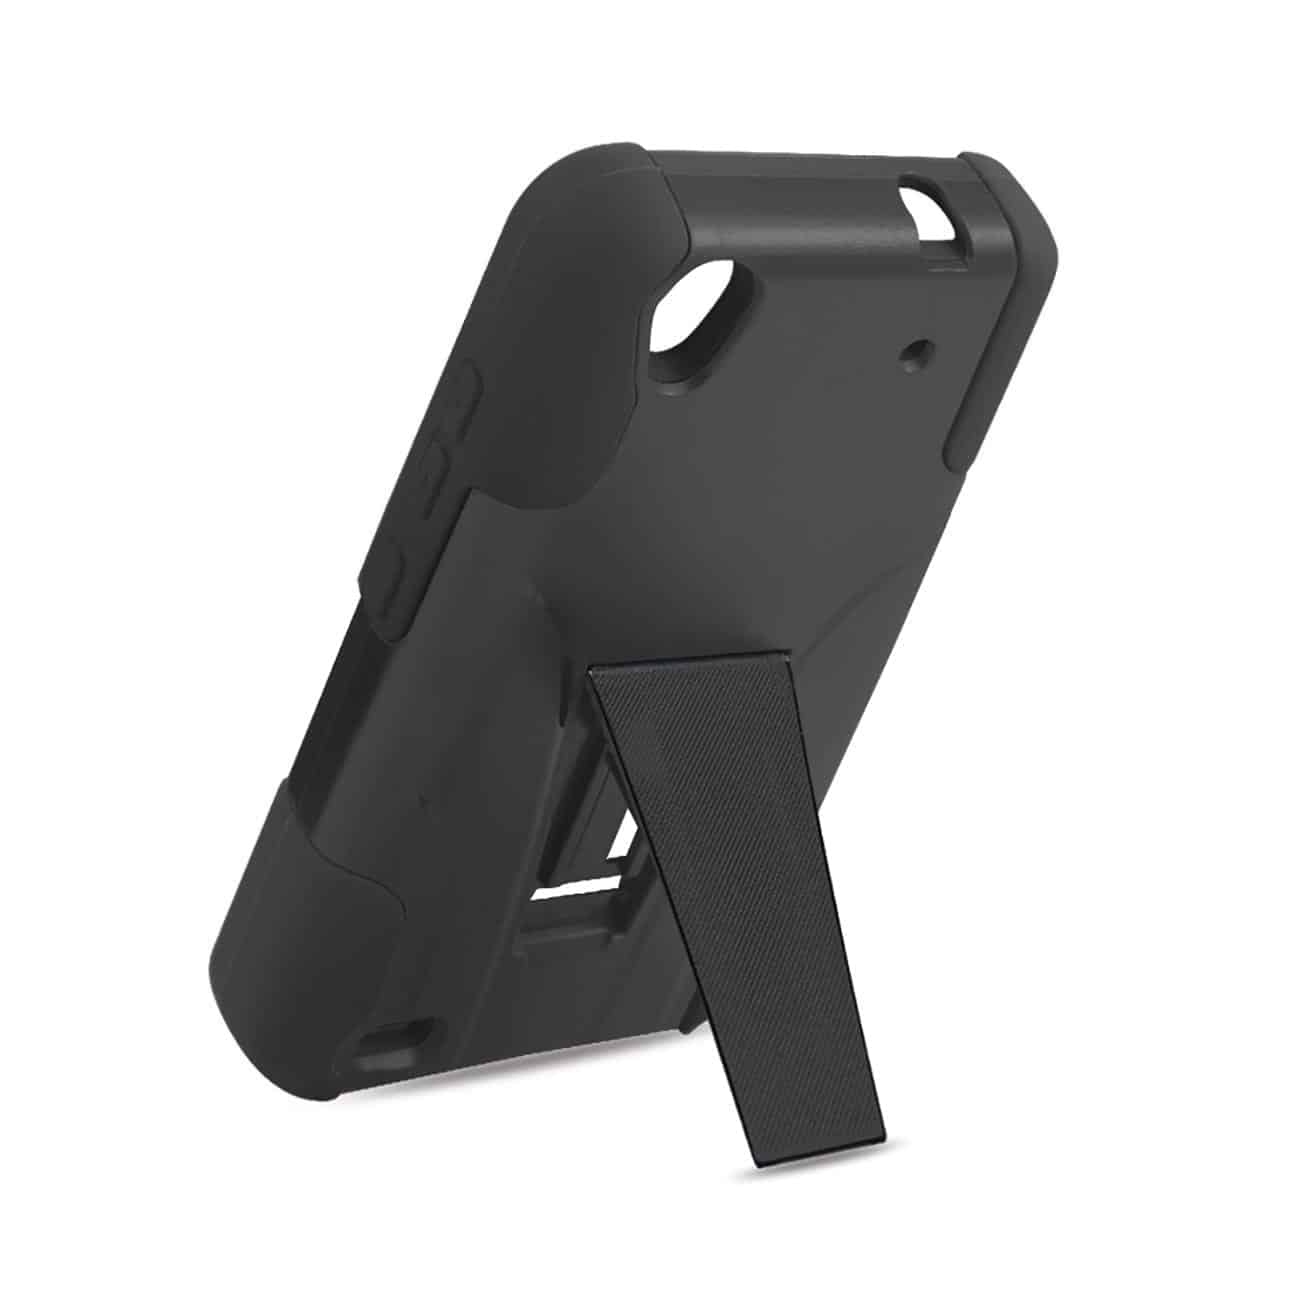 ZTE QUARTZ HYBRID HEAVY DUTY CASE WITH KICKSTAND IN BLACK